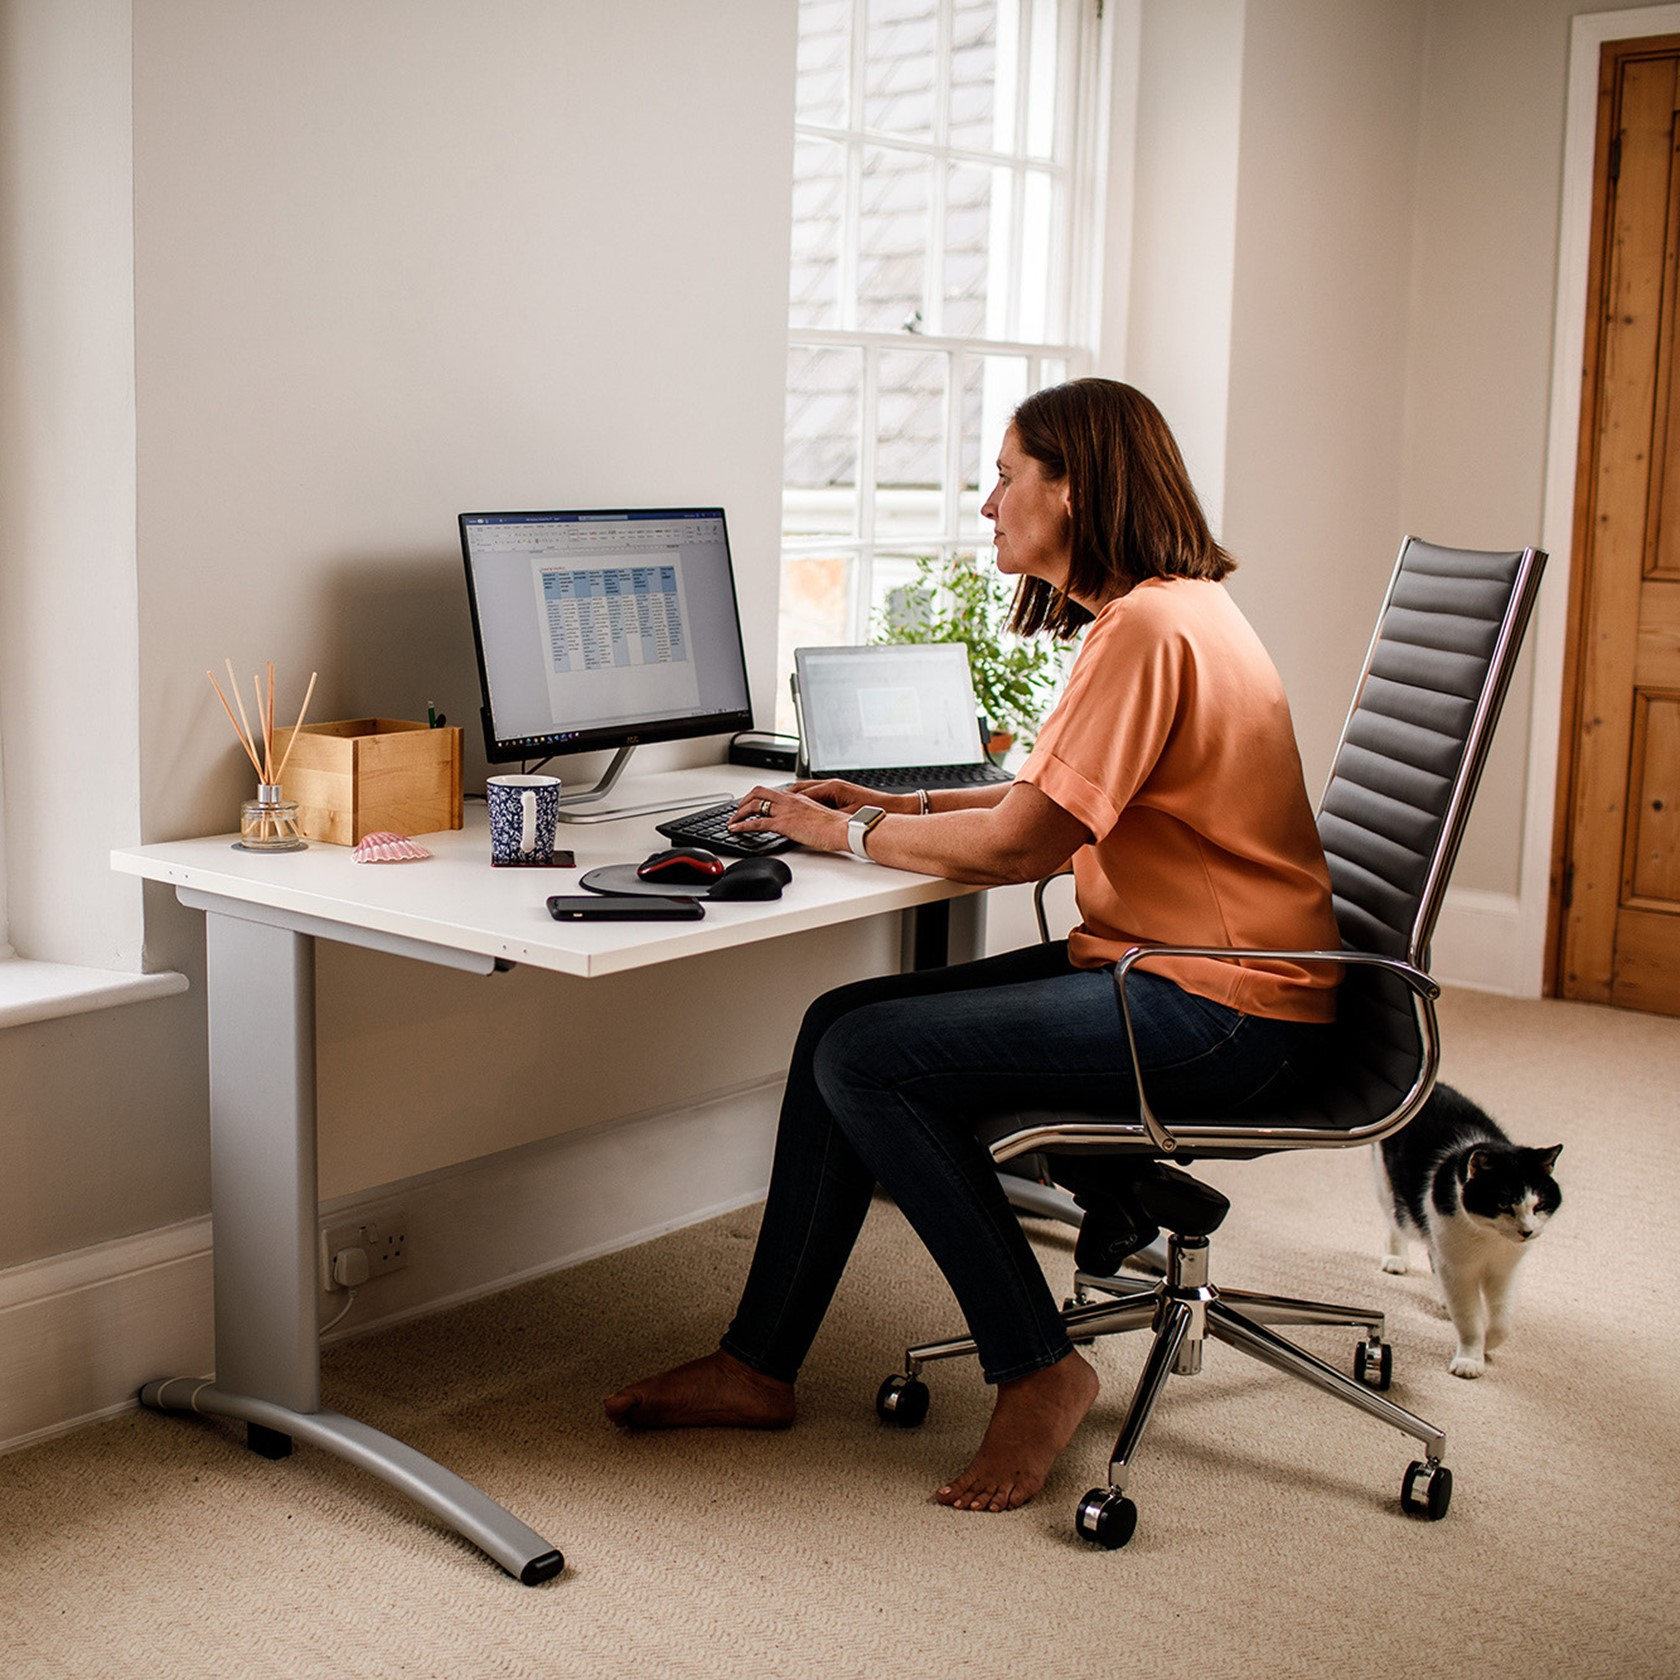 A woman uses a computer in a cosy looking home office.